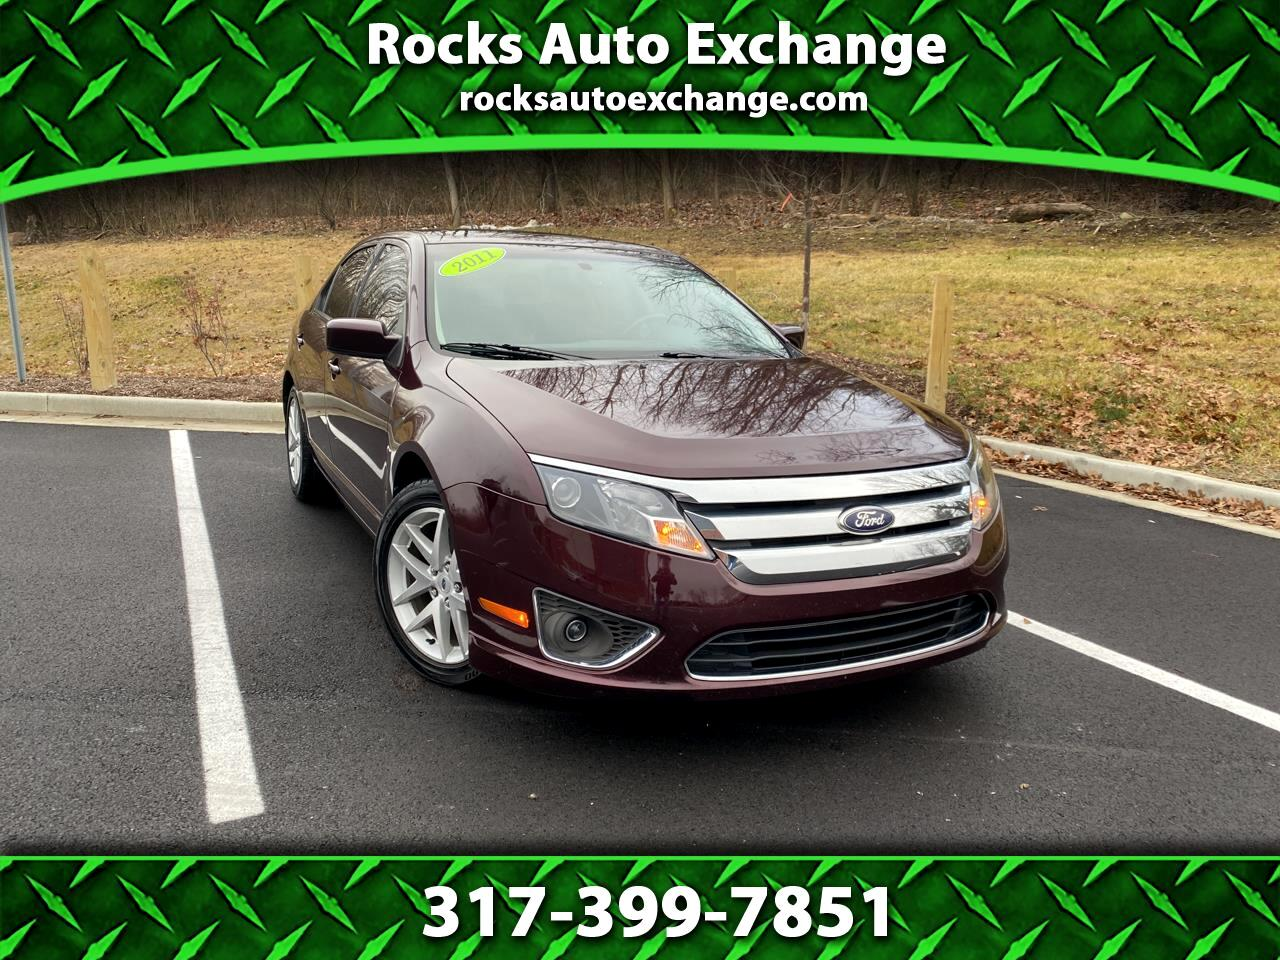 Ford Fusion 4dr Sdn SEL FWD 2011